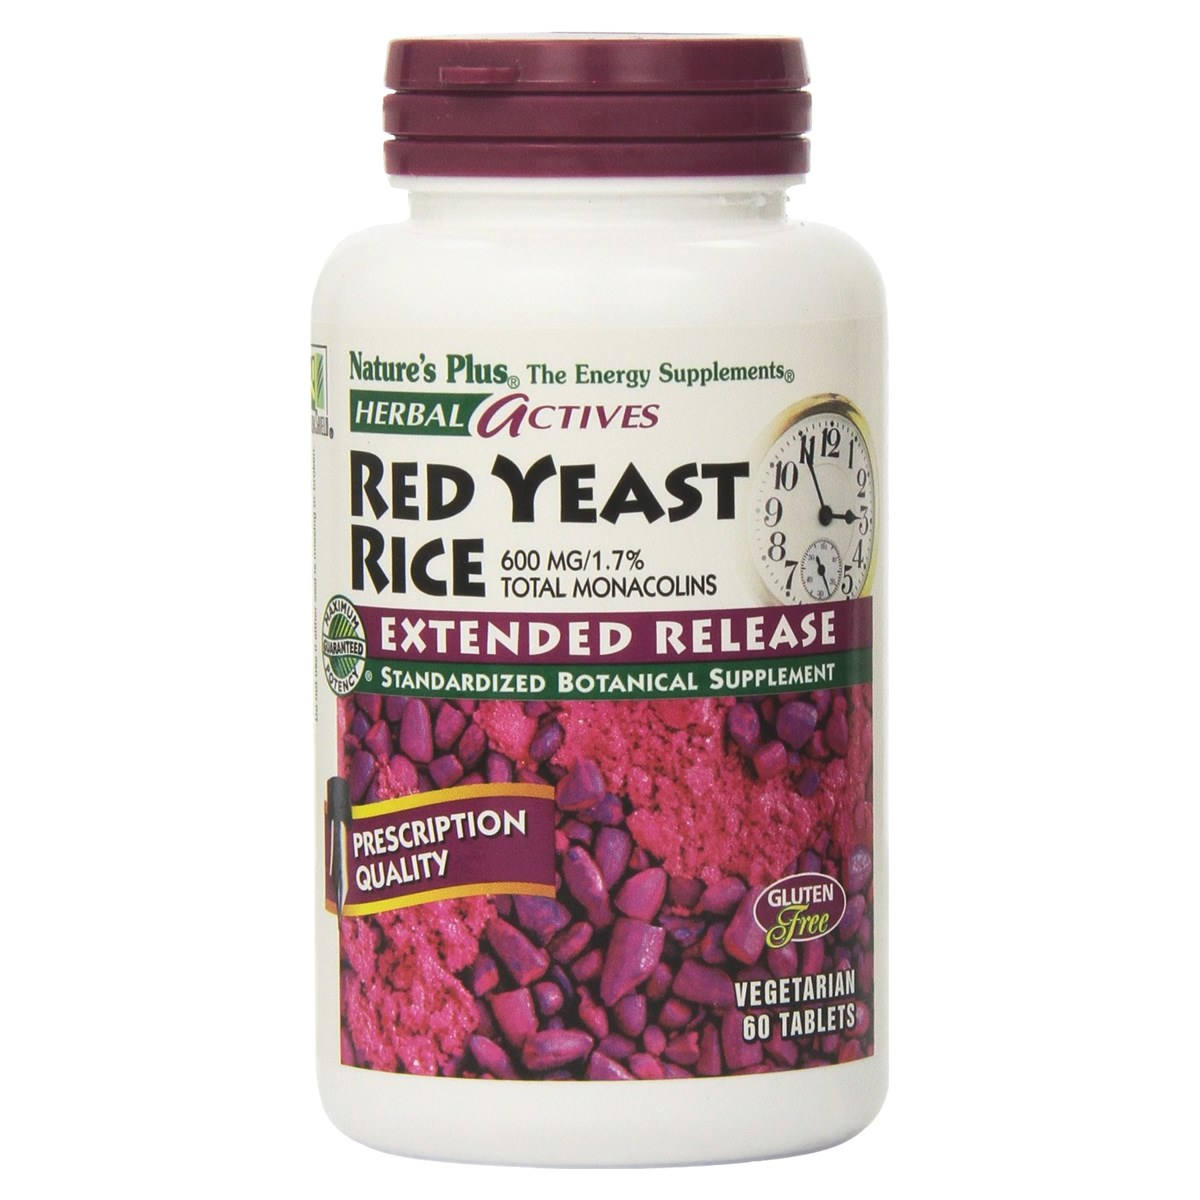 Natures Plus Herbal Actives Red Yeast Rice 600 mg Extended Release Tablets